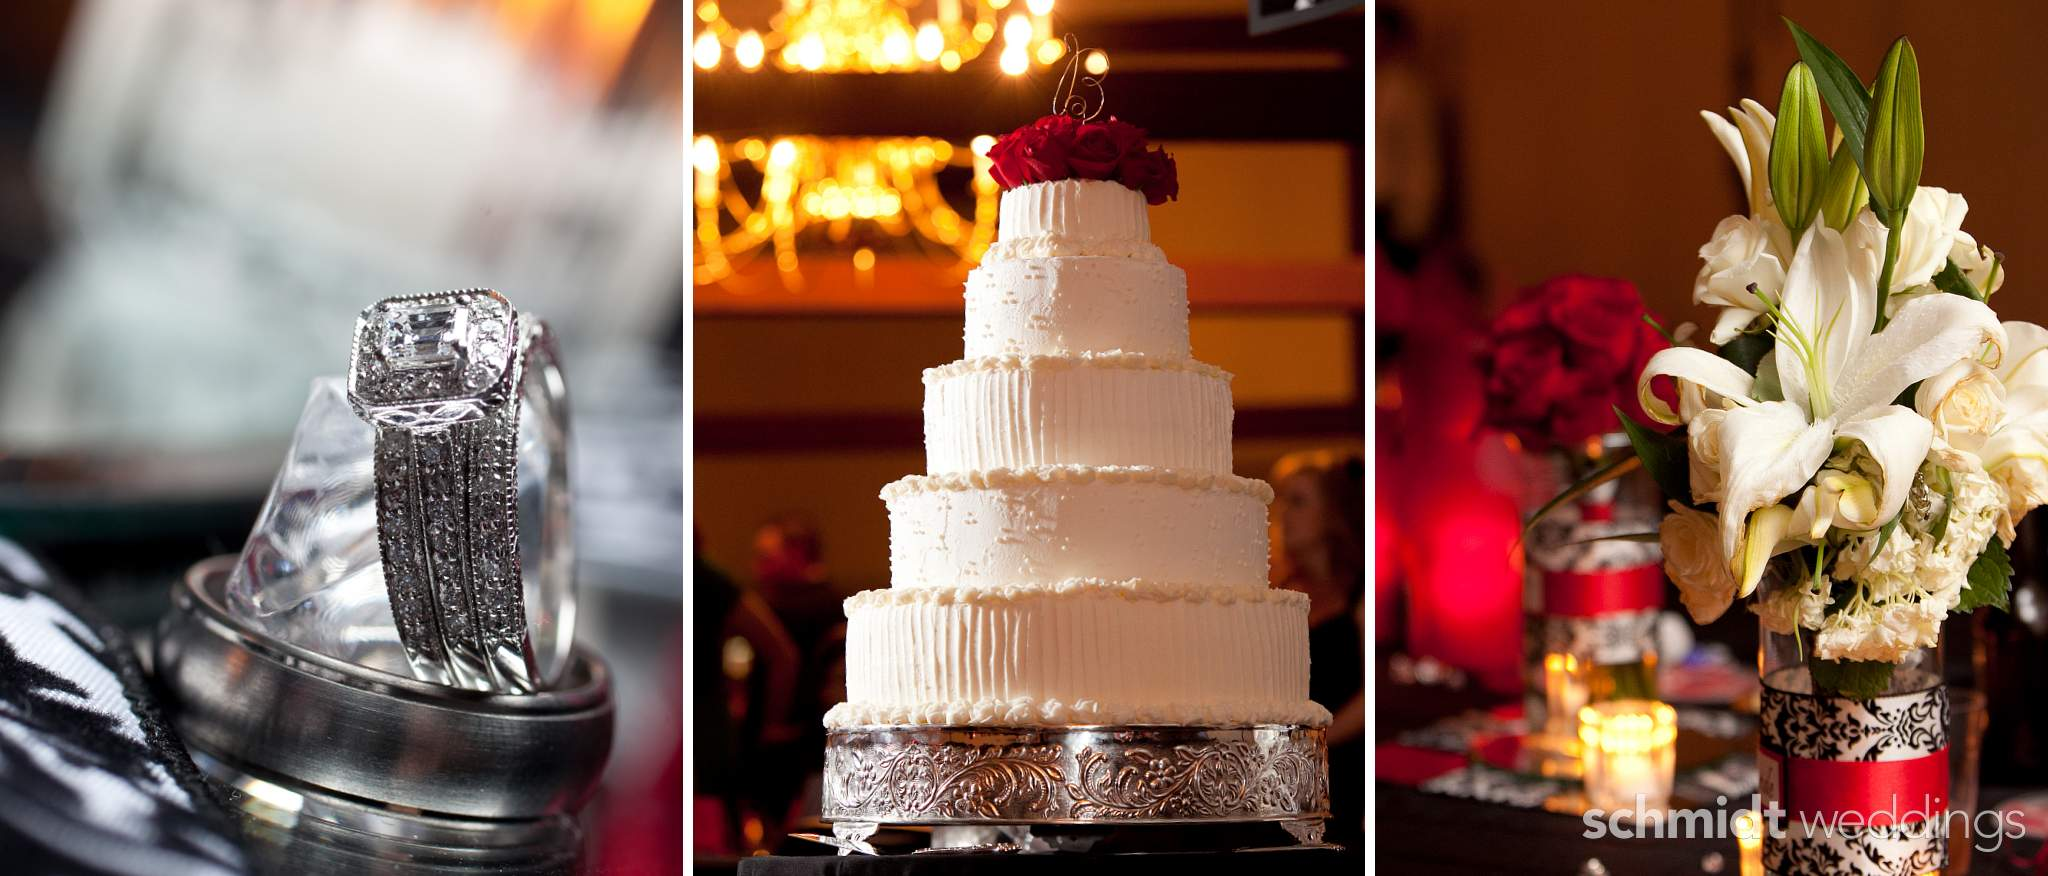 wedding day details for reception cake rings and flowers - schmidtweddings